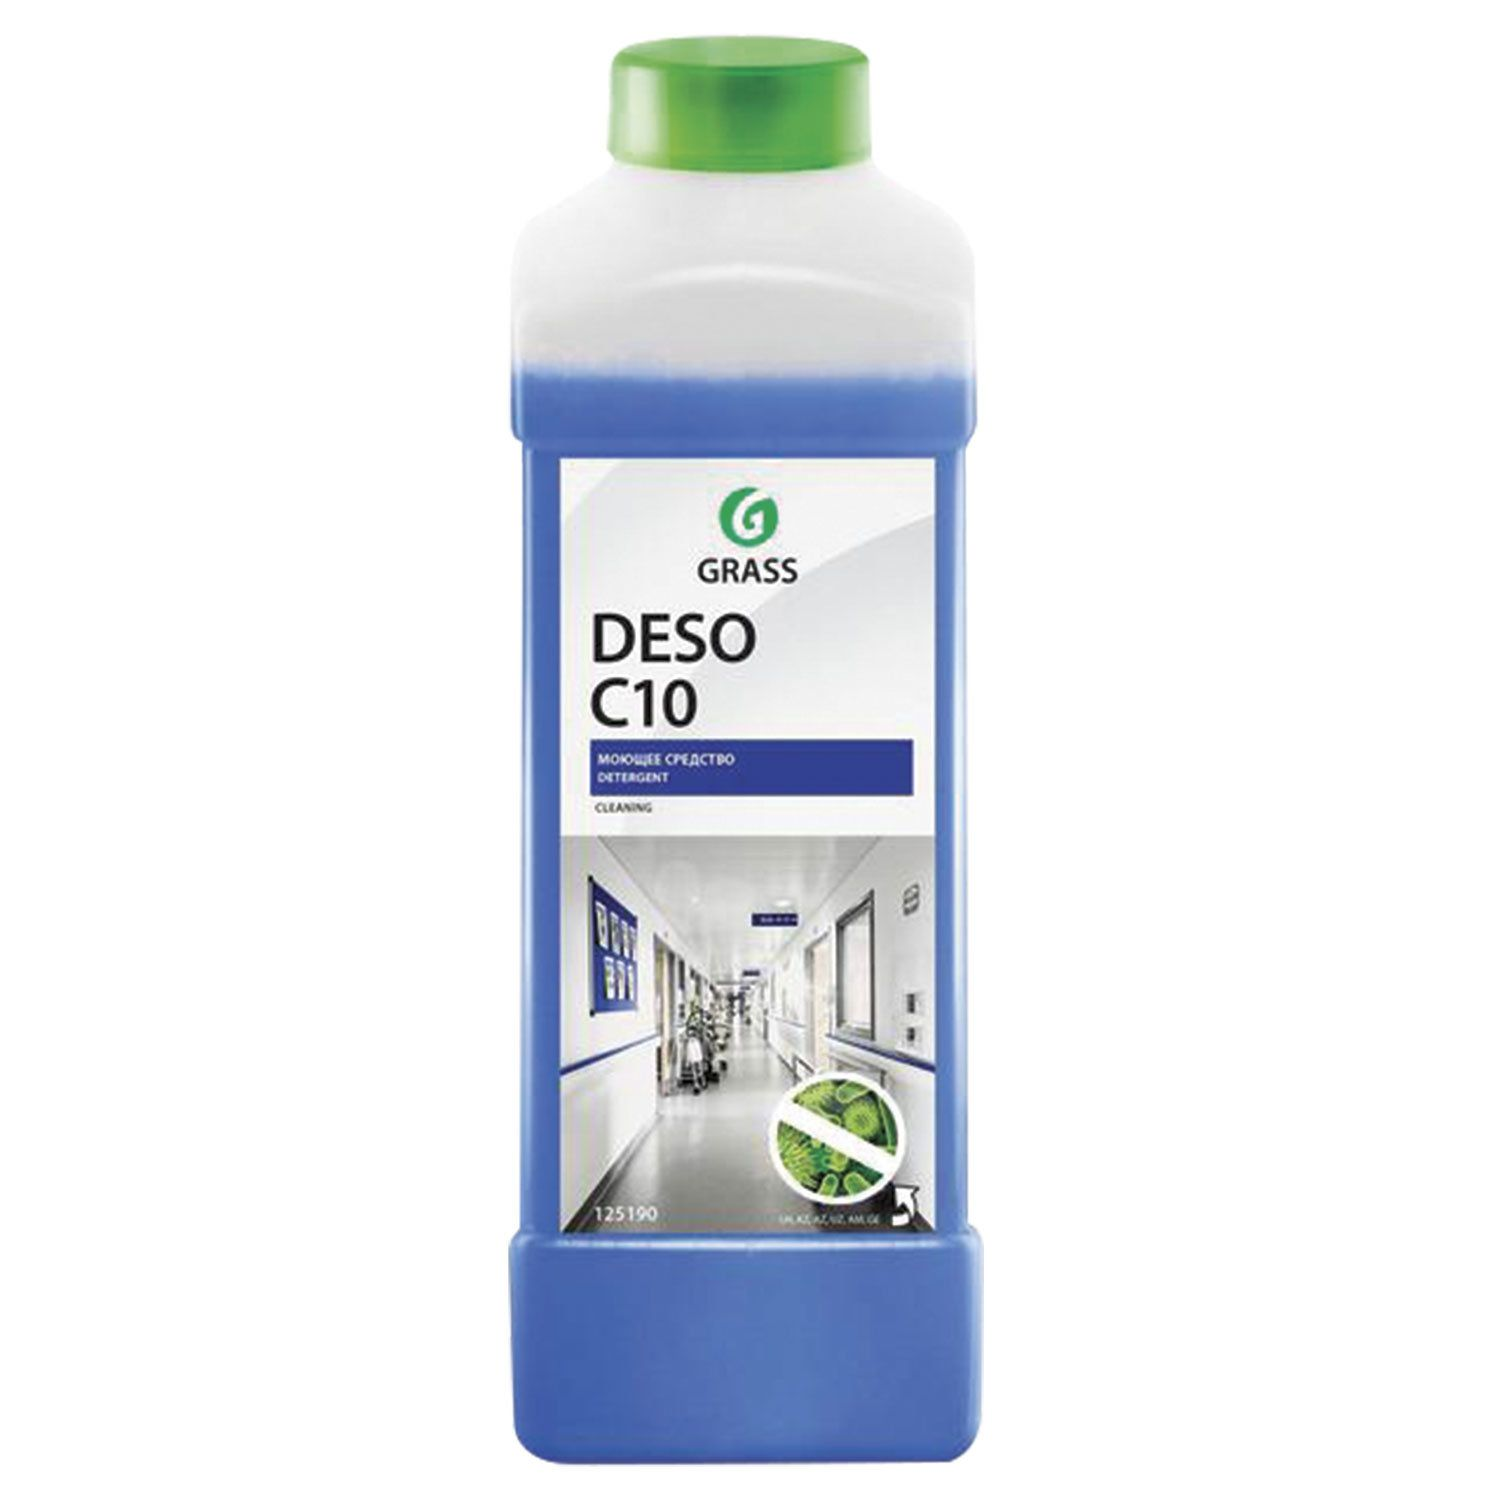 GRASS / Detergent disinfectant DESO C10, concentrate 1 l